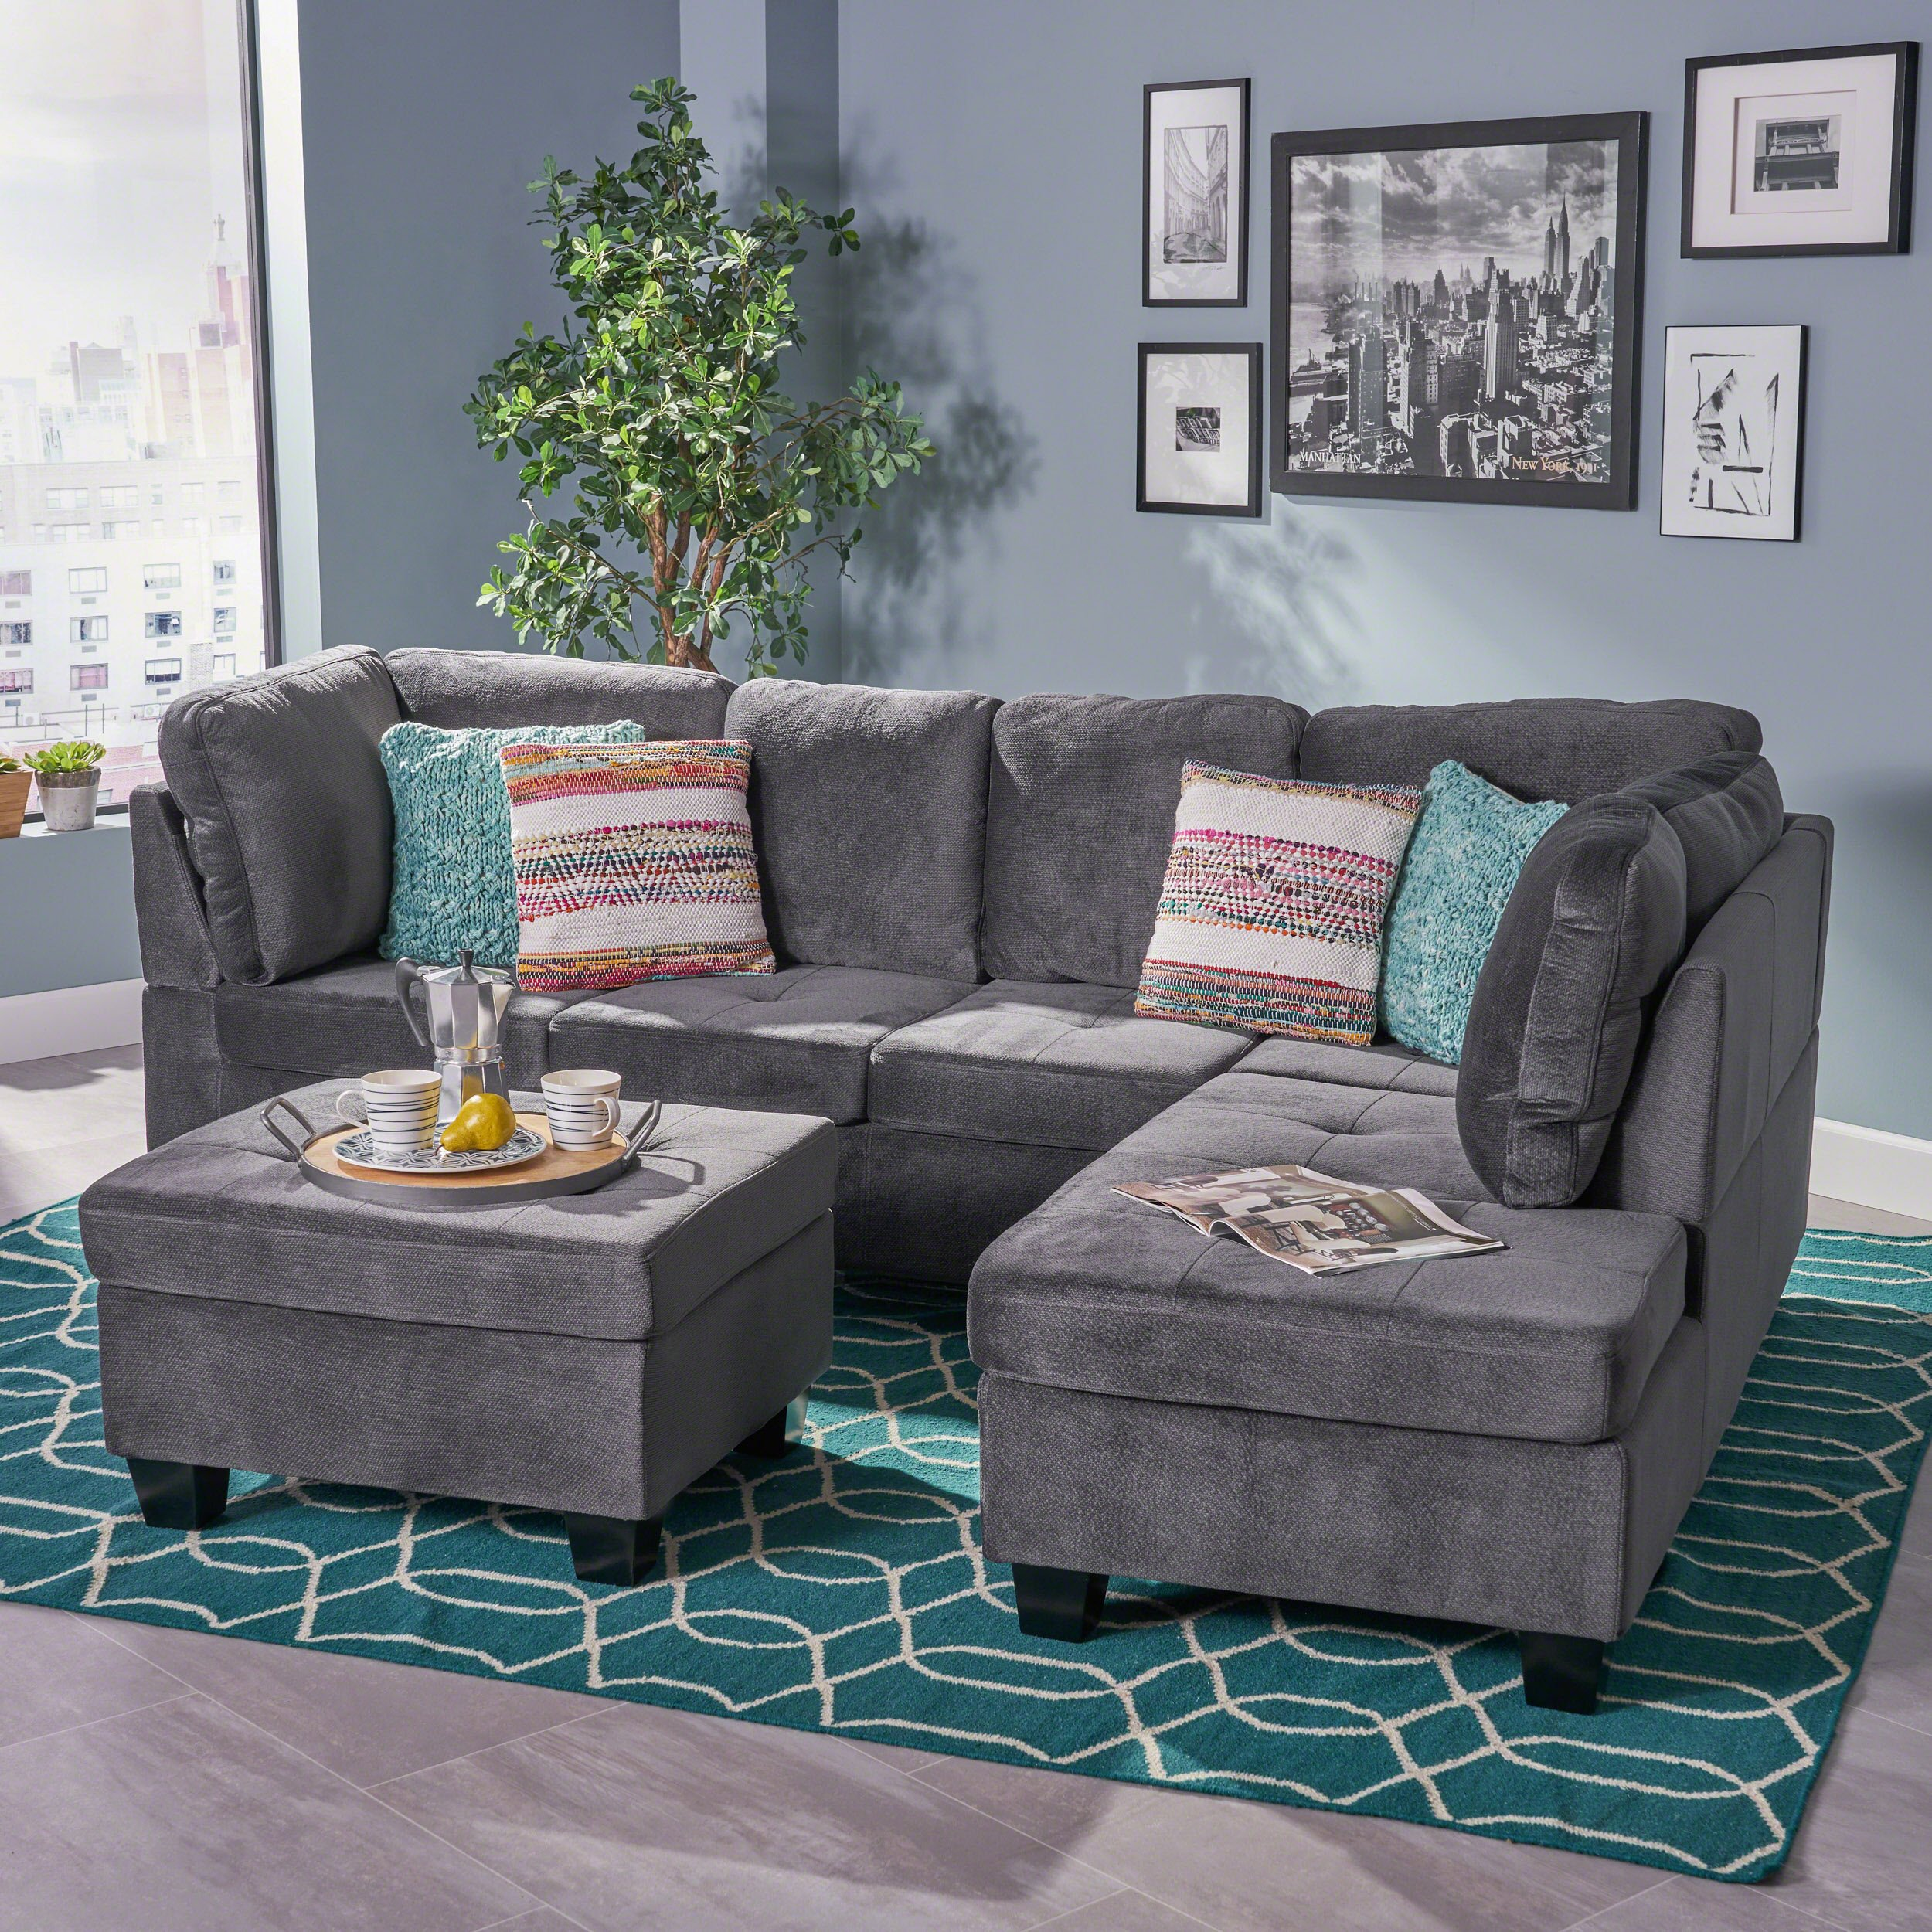 Christopher Knight Home Canterbury Sectional Sofa, CHARCOAL by Christopher Knight Home